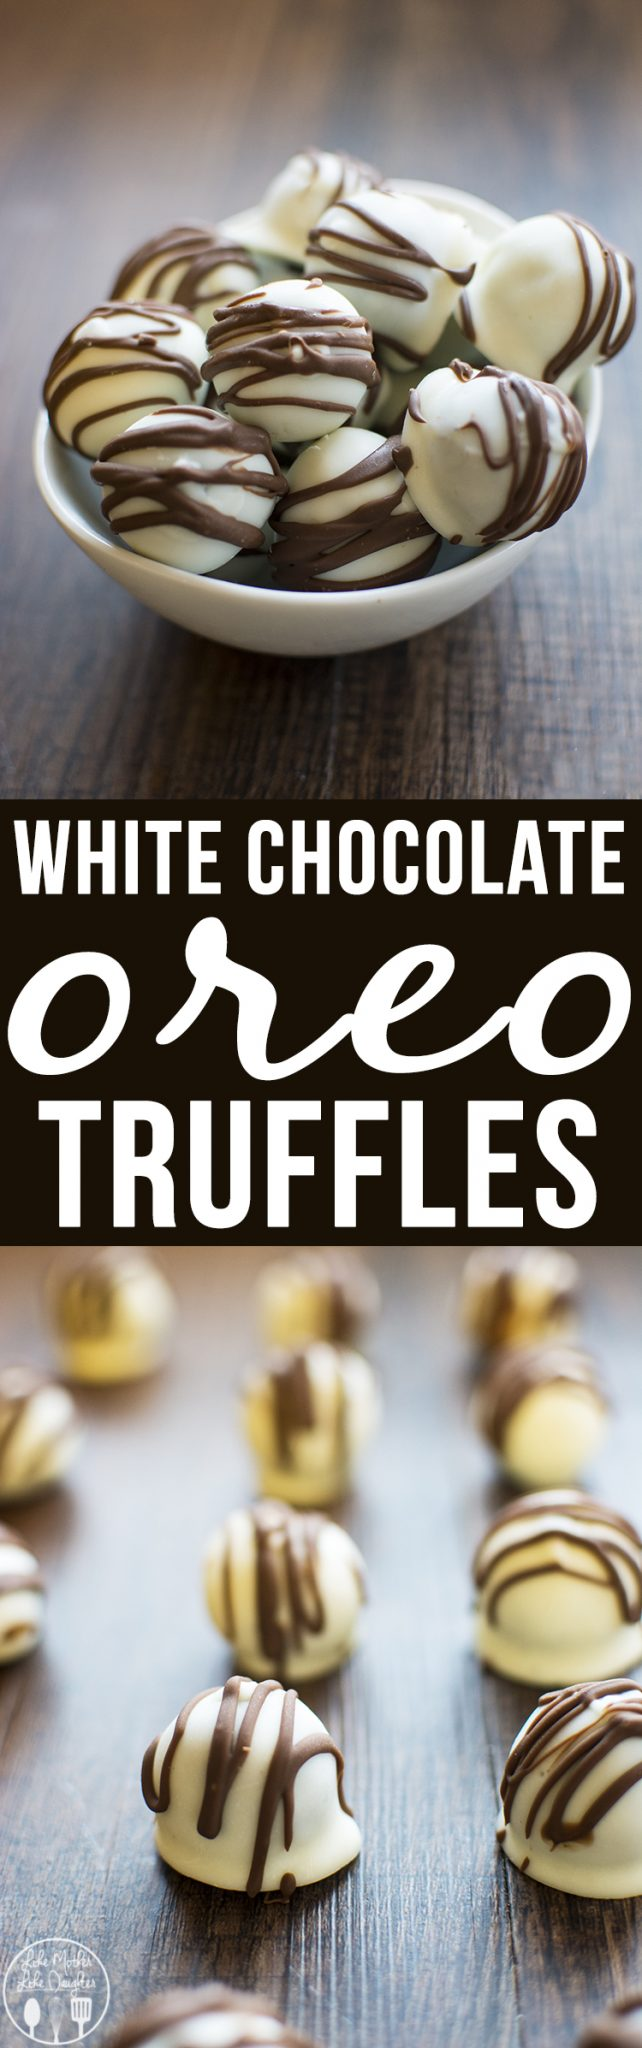 White Chocolate Oreo Truffles - These oreo truffles are a delicious and simple no bake treat with only 3 ingredients, that taste like little bites of cookies and cream!